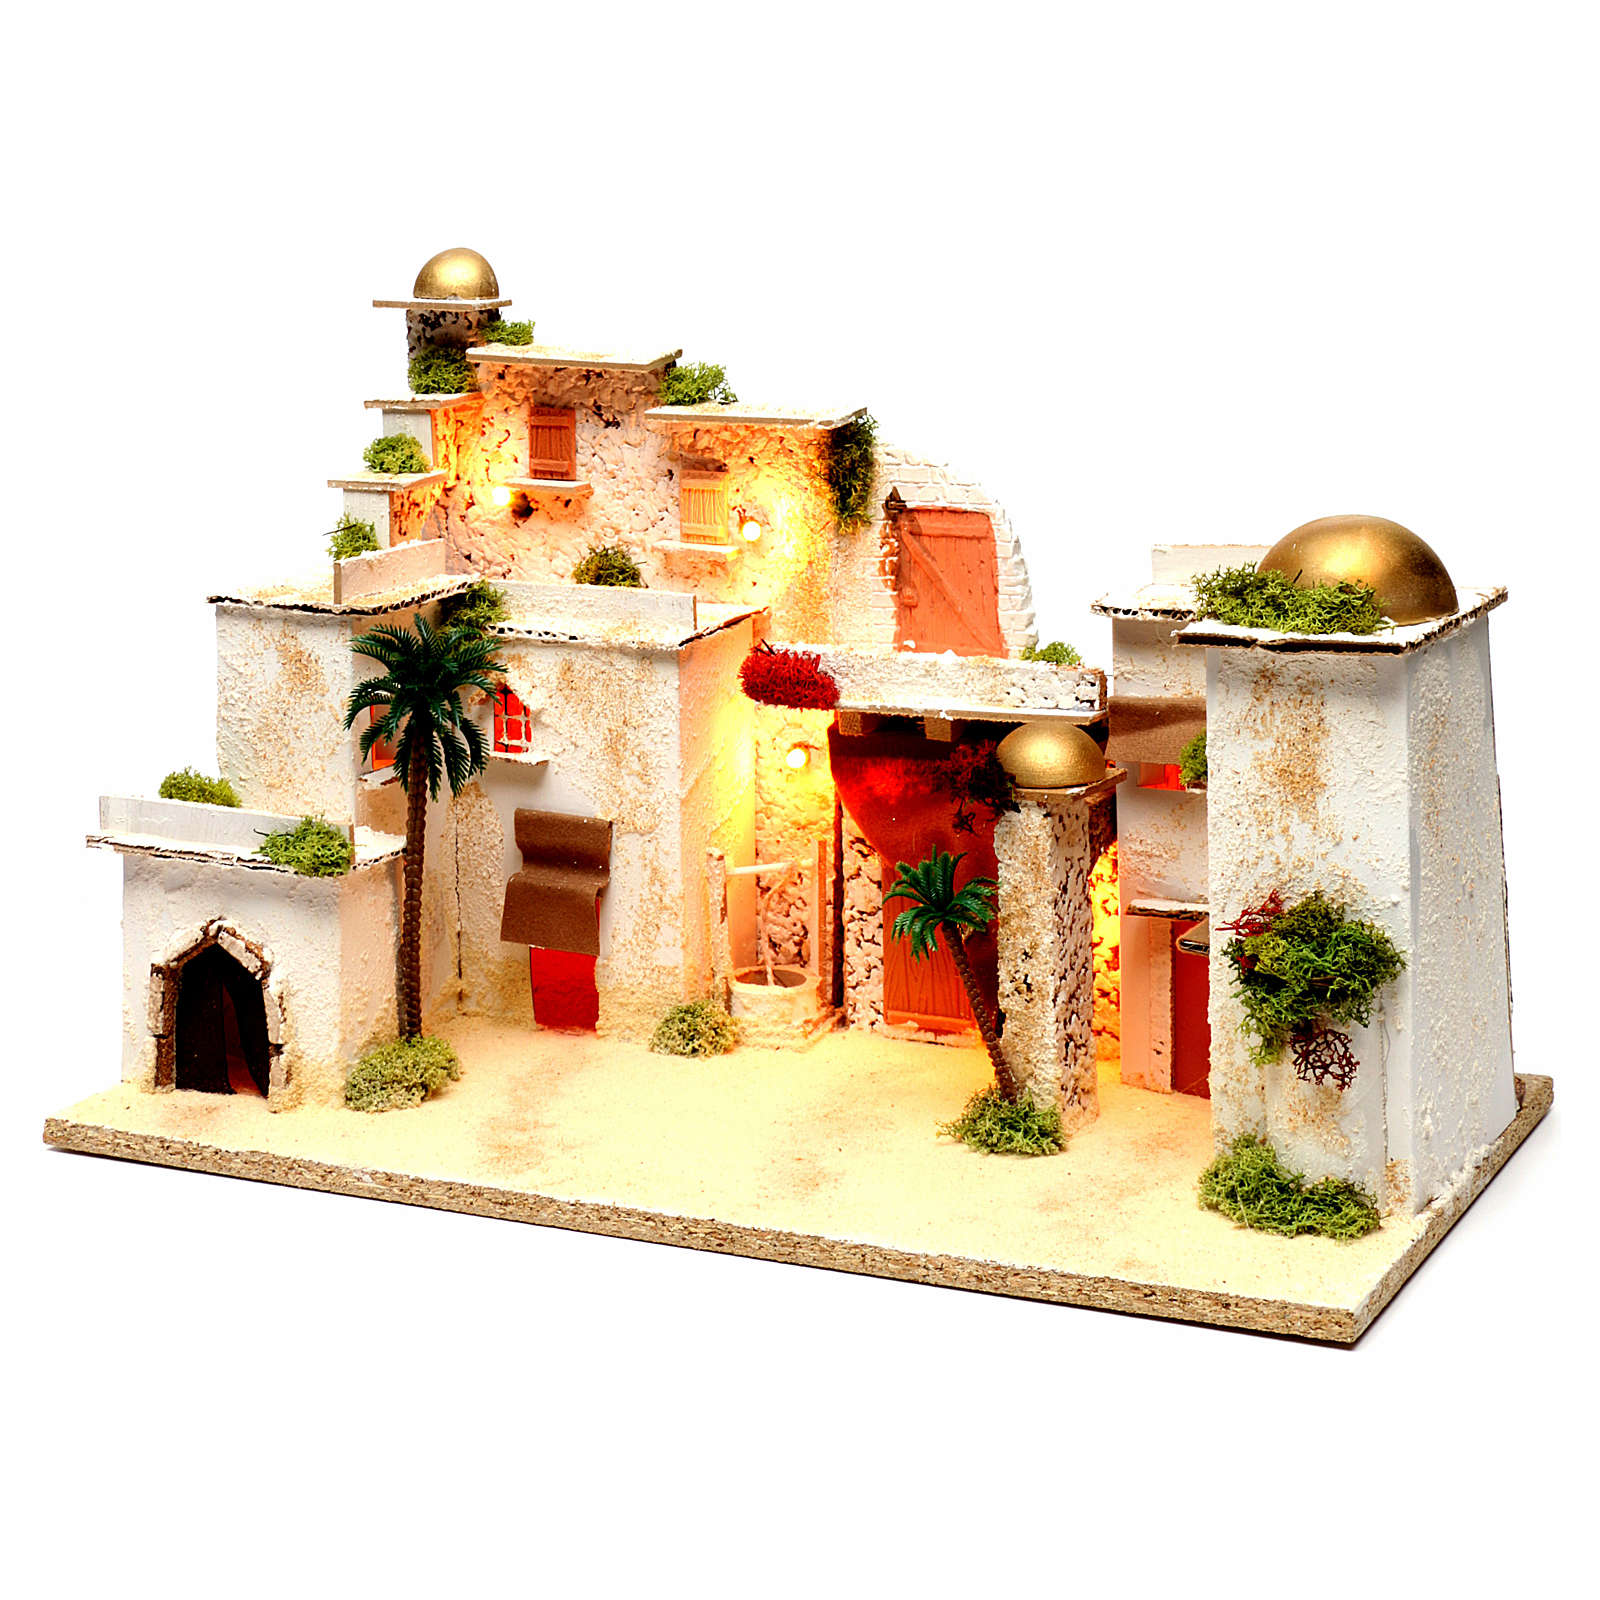 Arab landscape with lights for Nativity Scene 35x50x30 cm 4